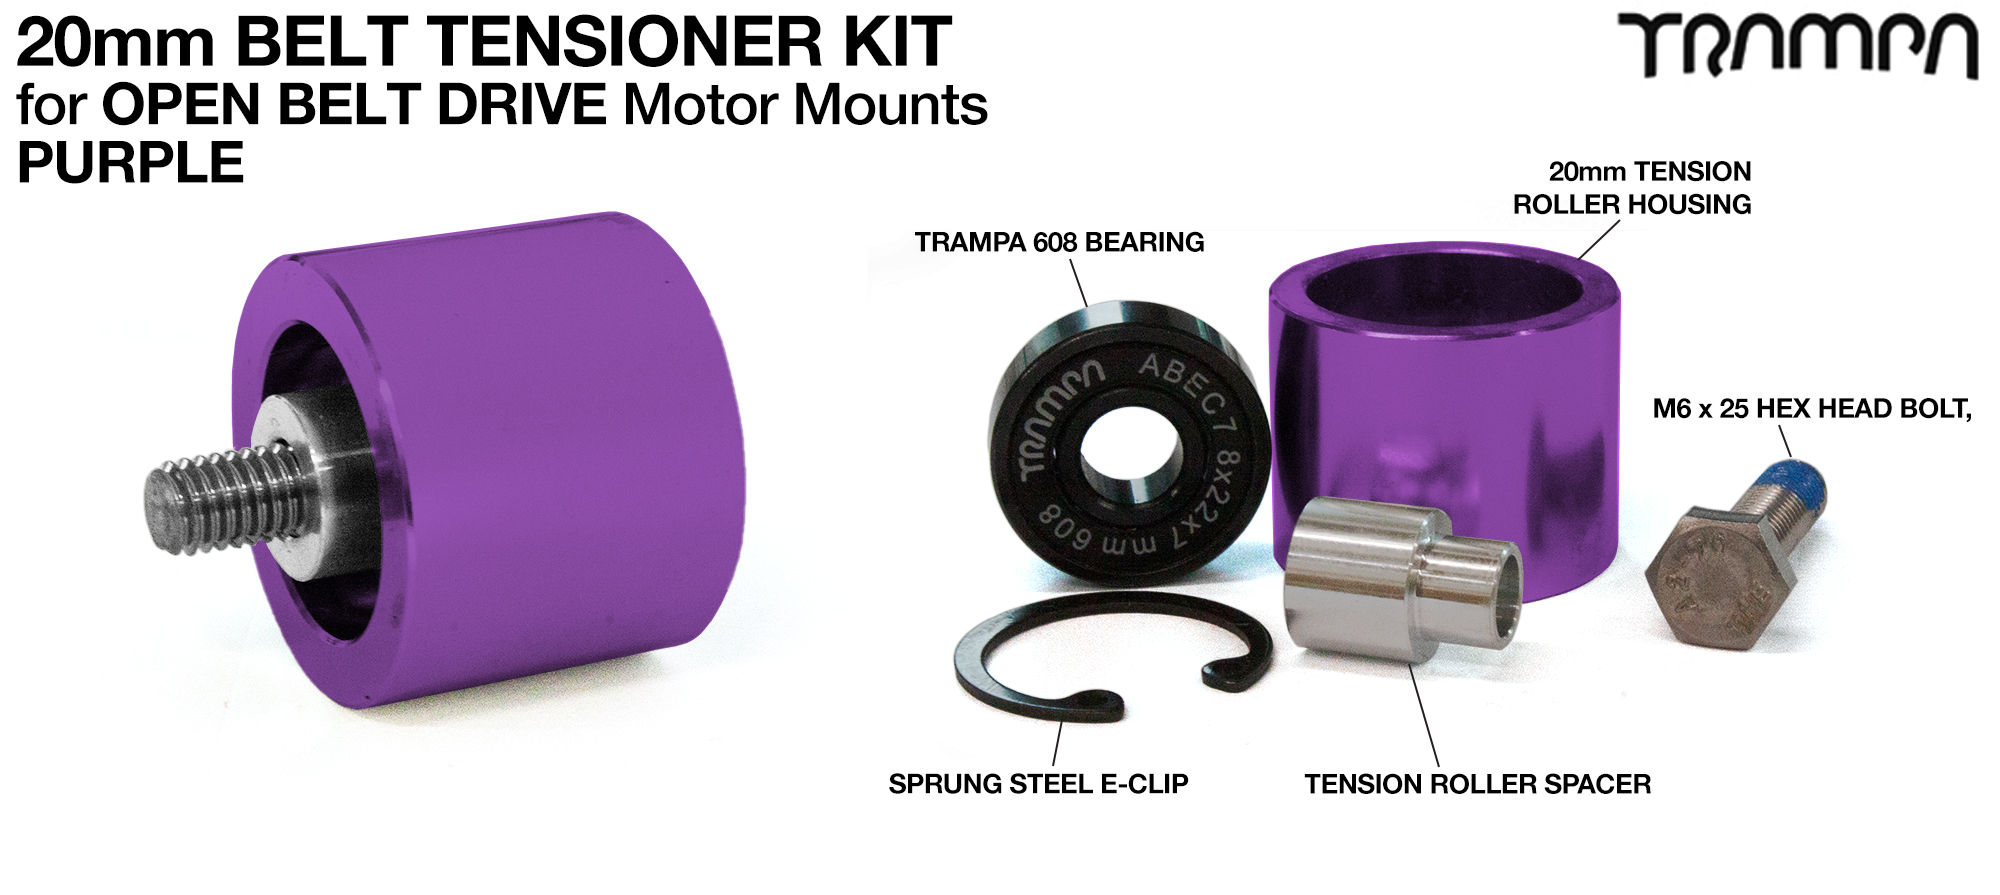 PURPLE OBD 20mm Belt Tensioner